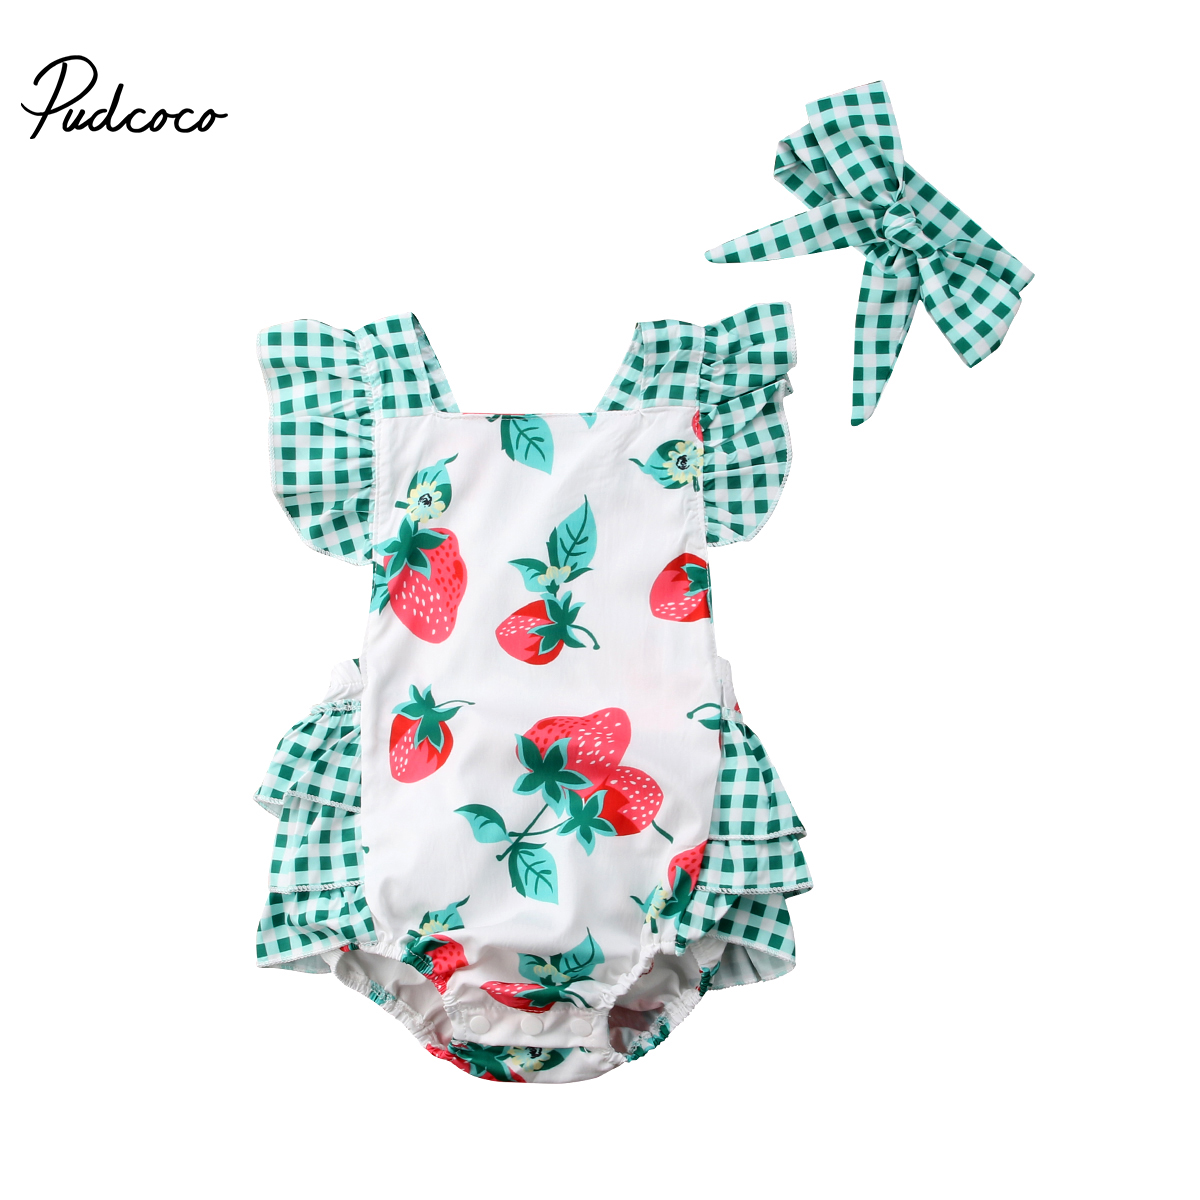 2018 Brand New Newborn Baby Girl Strawberry Clothes Sleeveless Back Cross Tutu Ruffle Baby   Romper   Jumpsuit Outfit Plaid Snsuit